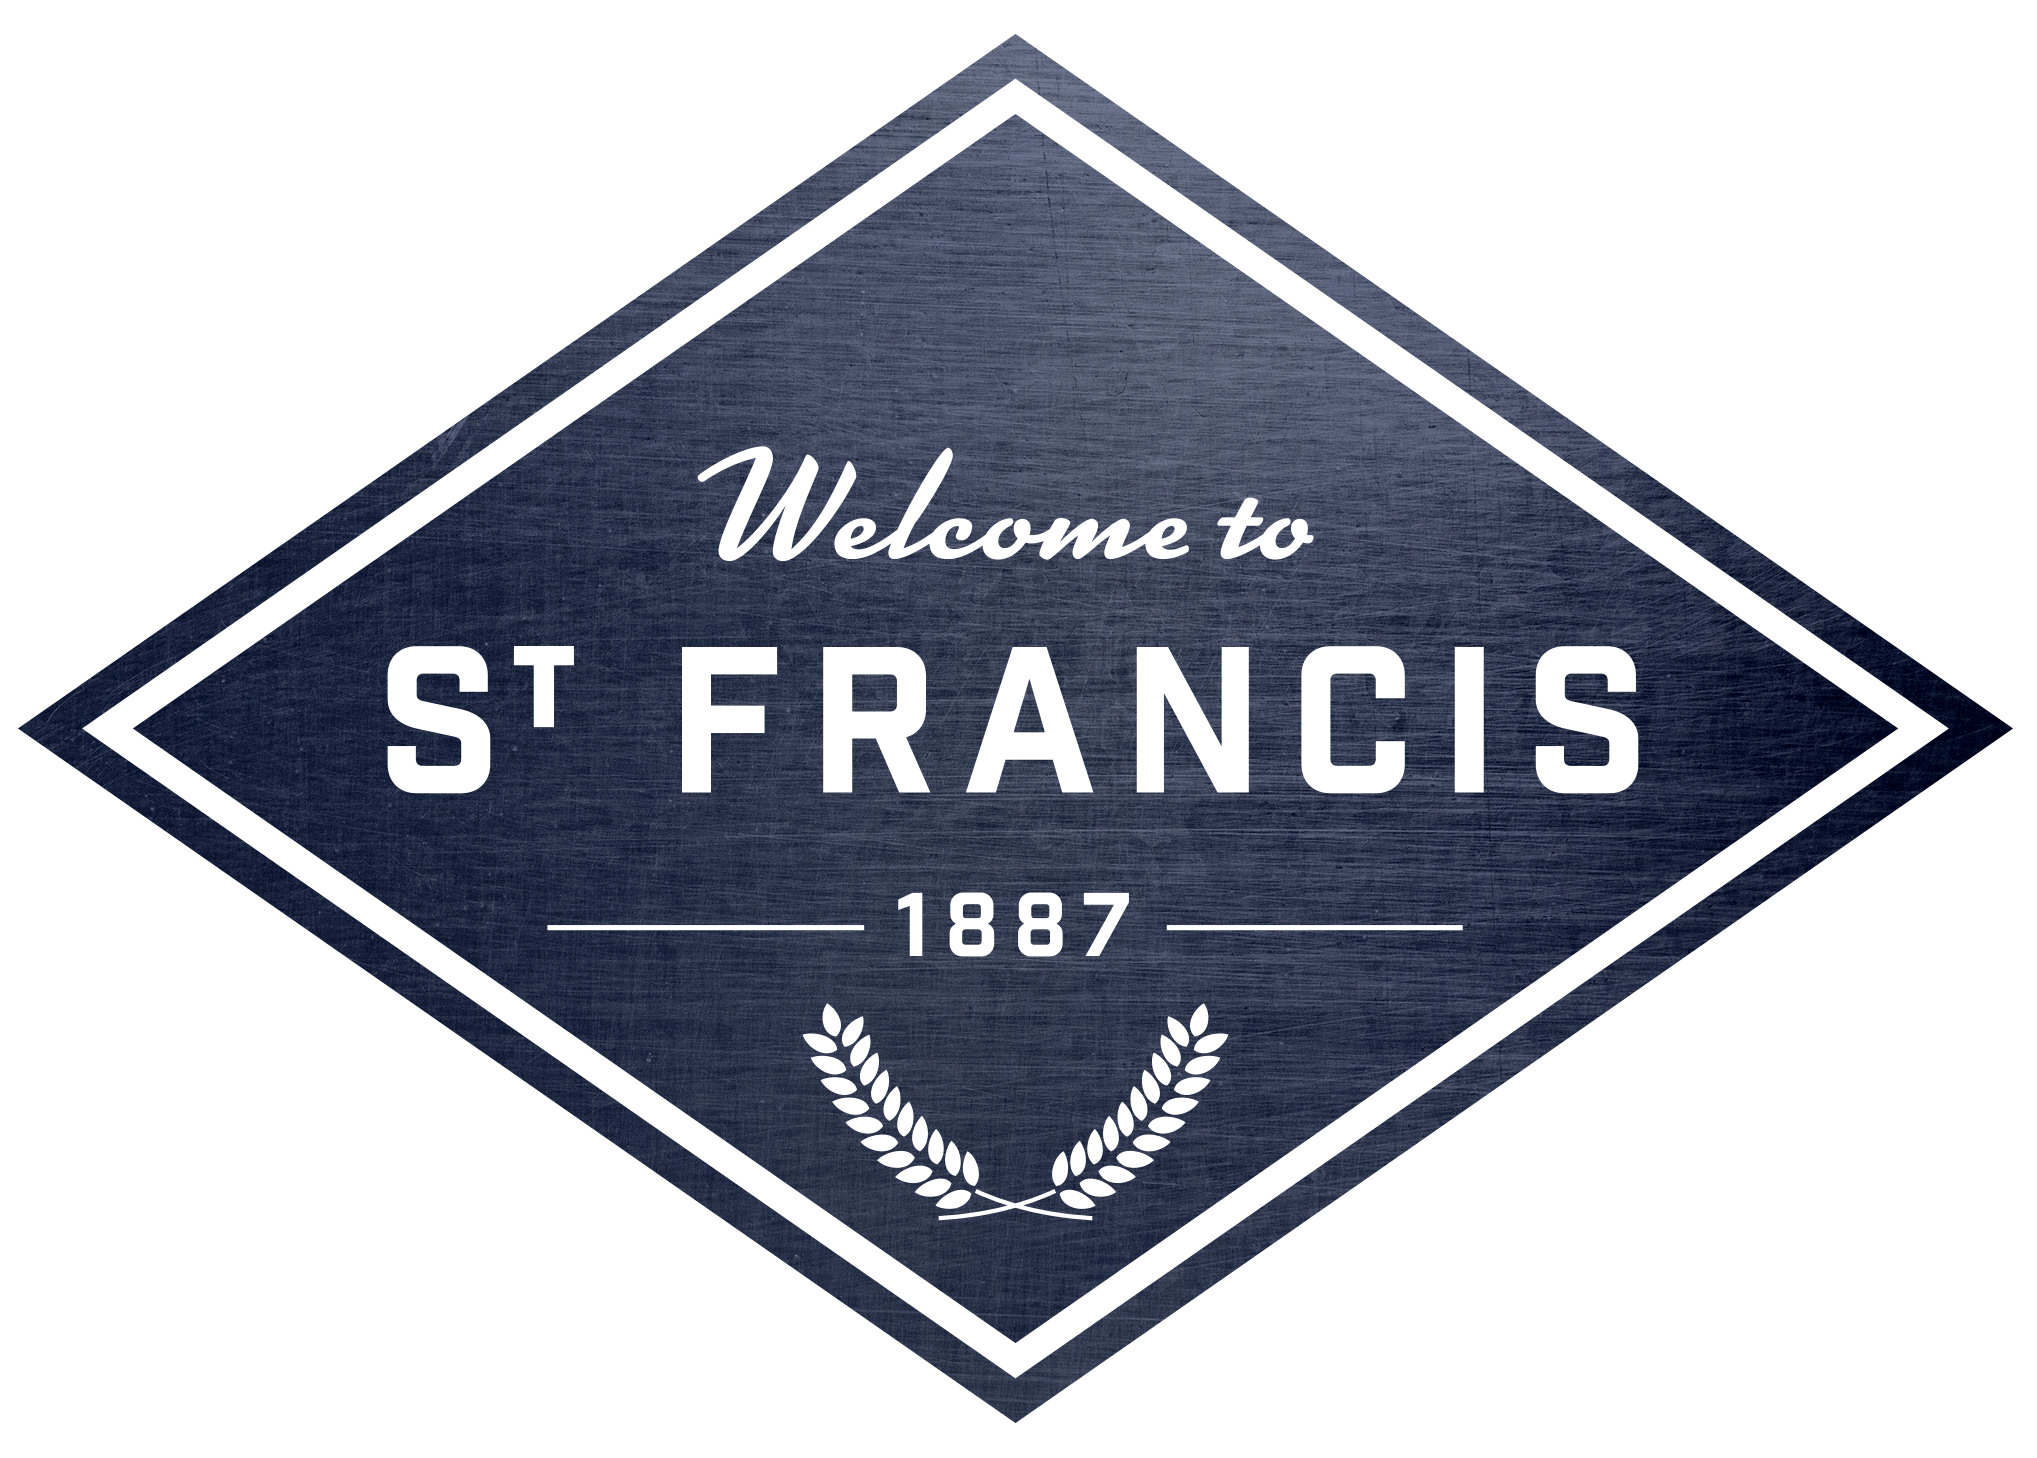 The City of St. Francis